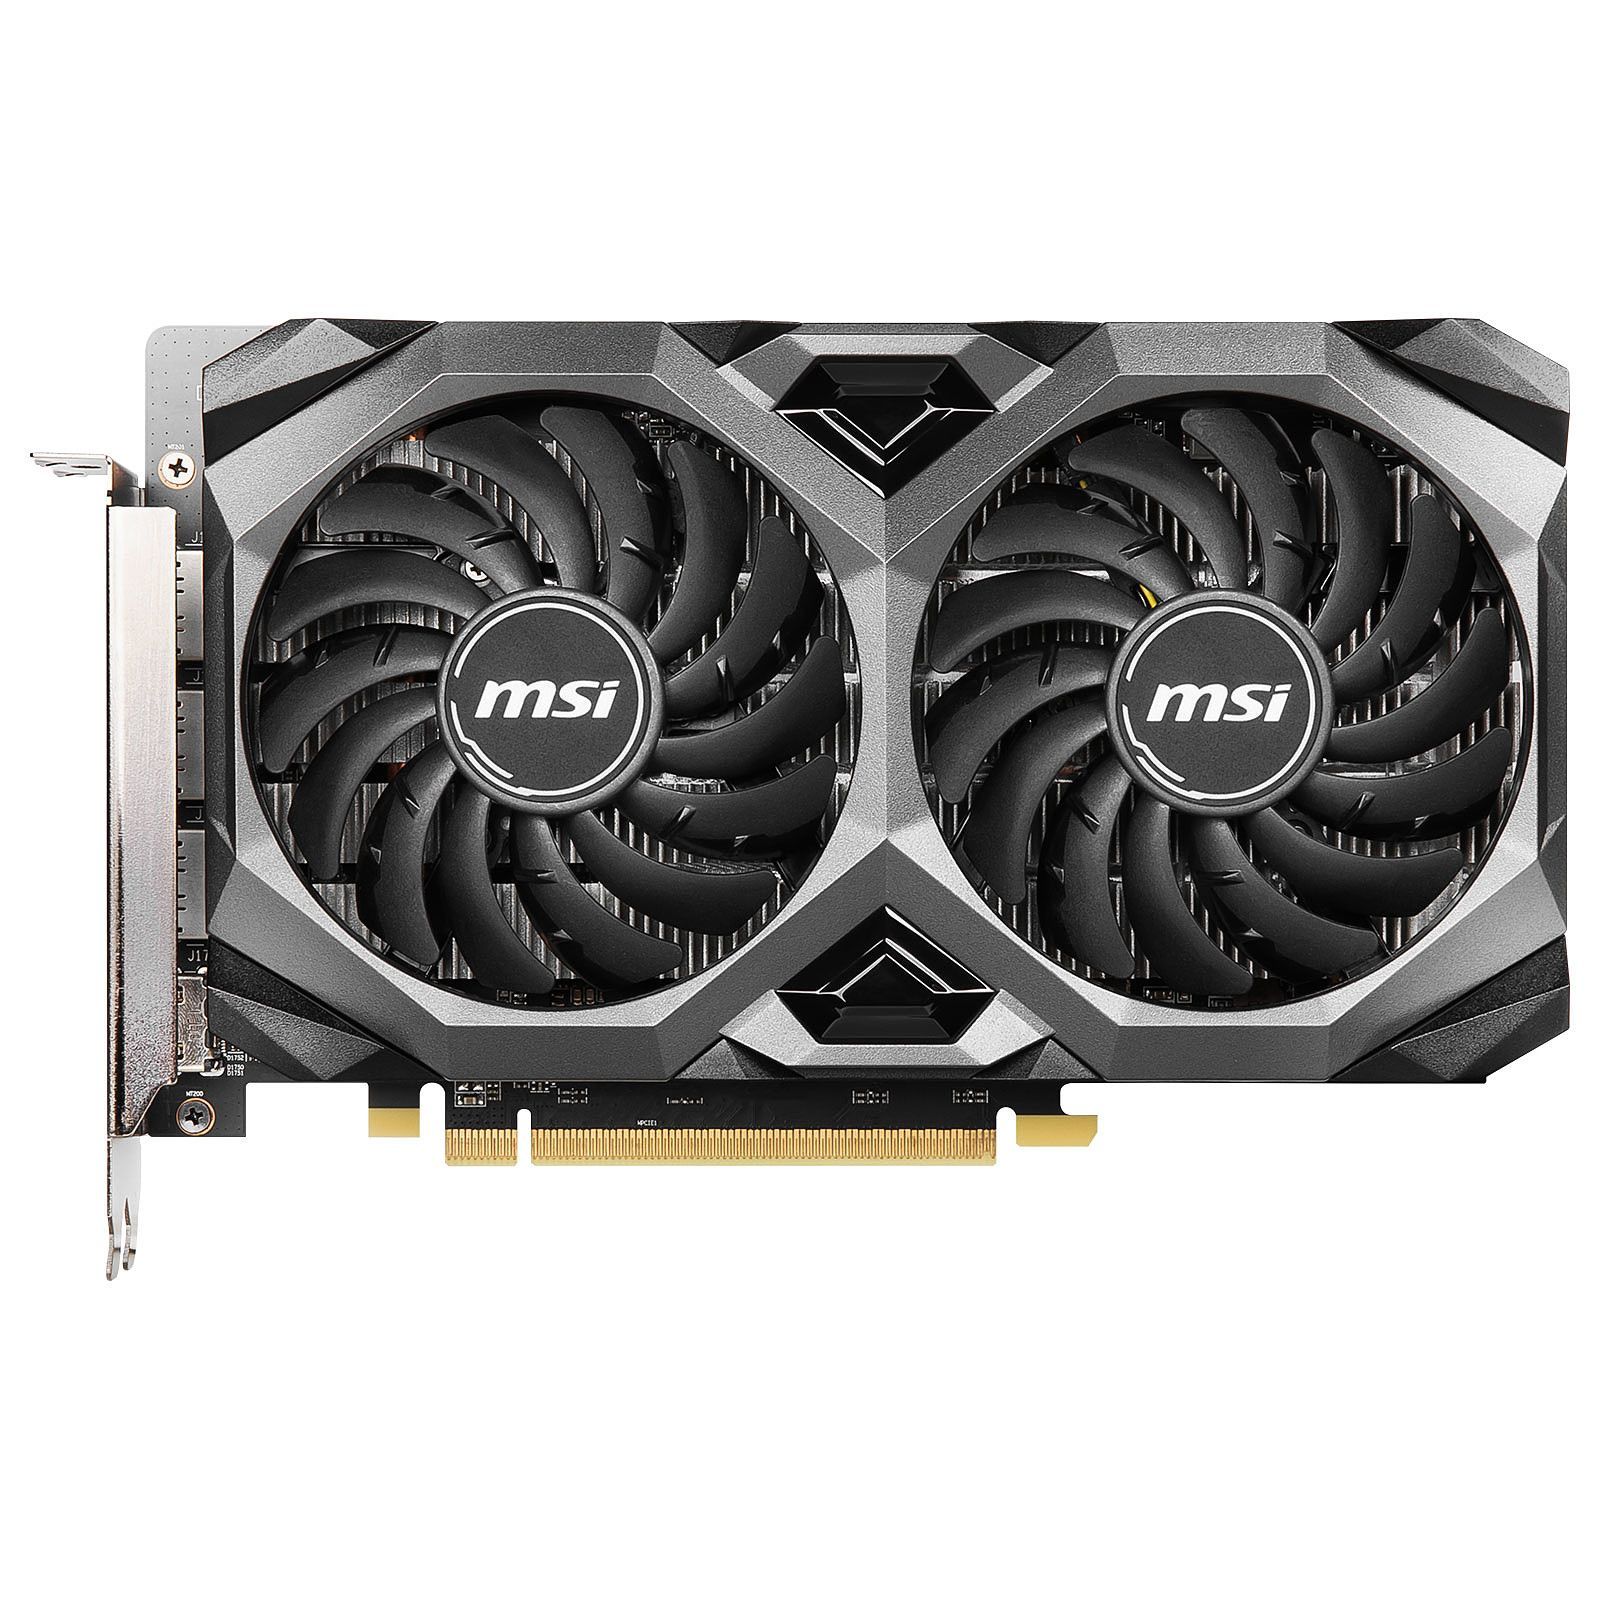 tarjeta-de-video-msi-amd-radeon-rx-5500-xt-mech-4gb-gddr6-128-bit-pci-e-4-0